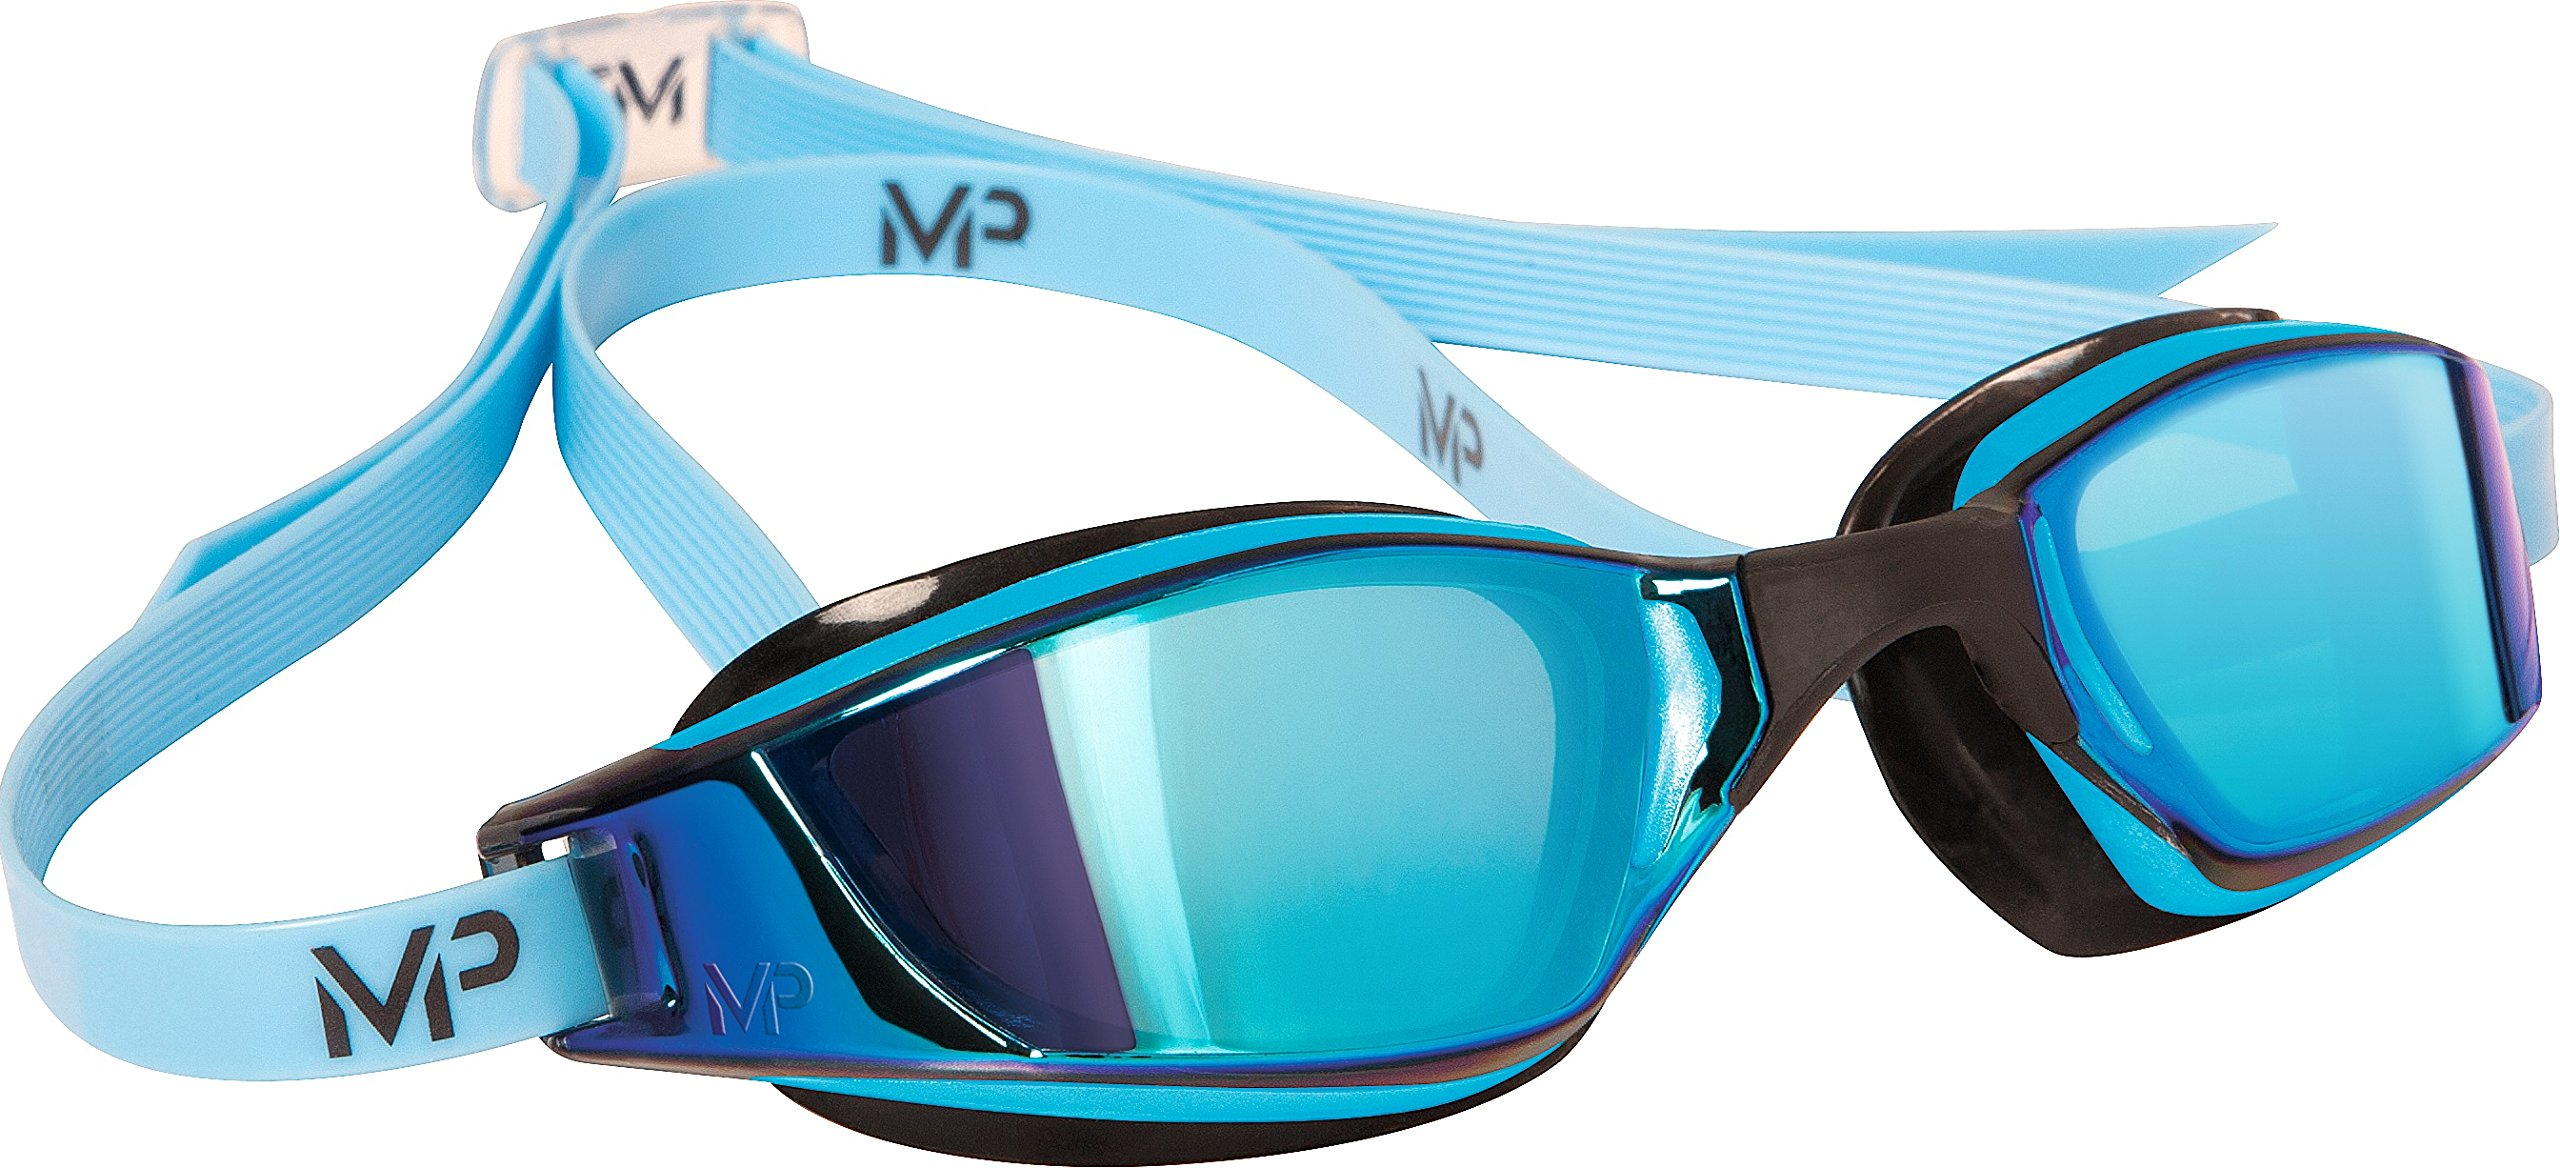 MP Michael Phelps XCEED Swimming Goggles, Mirrored Lens, Blue/Black Frame